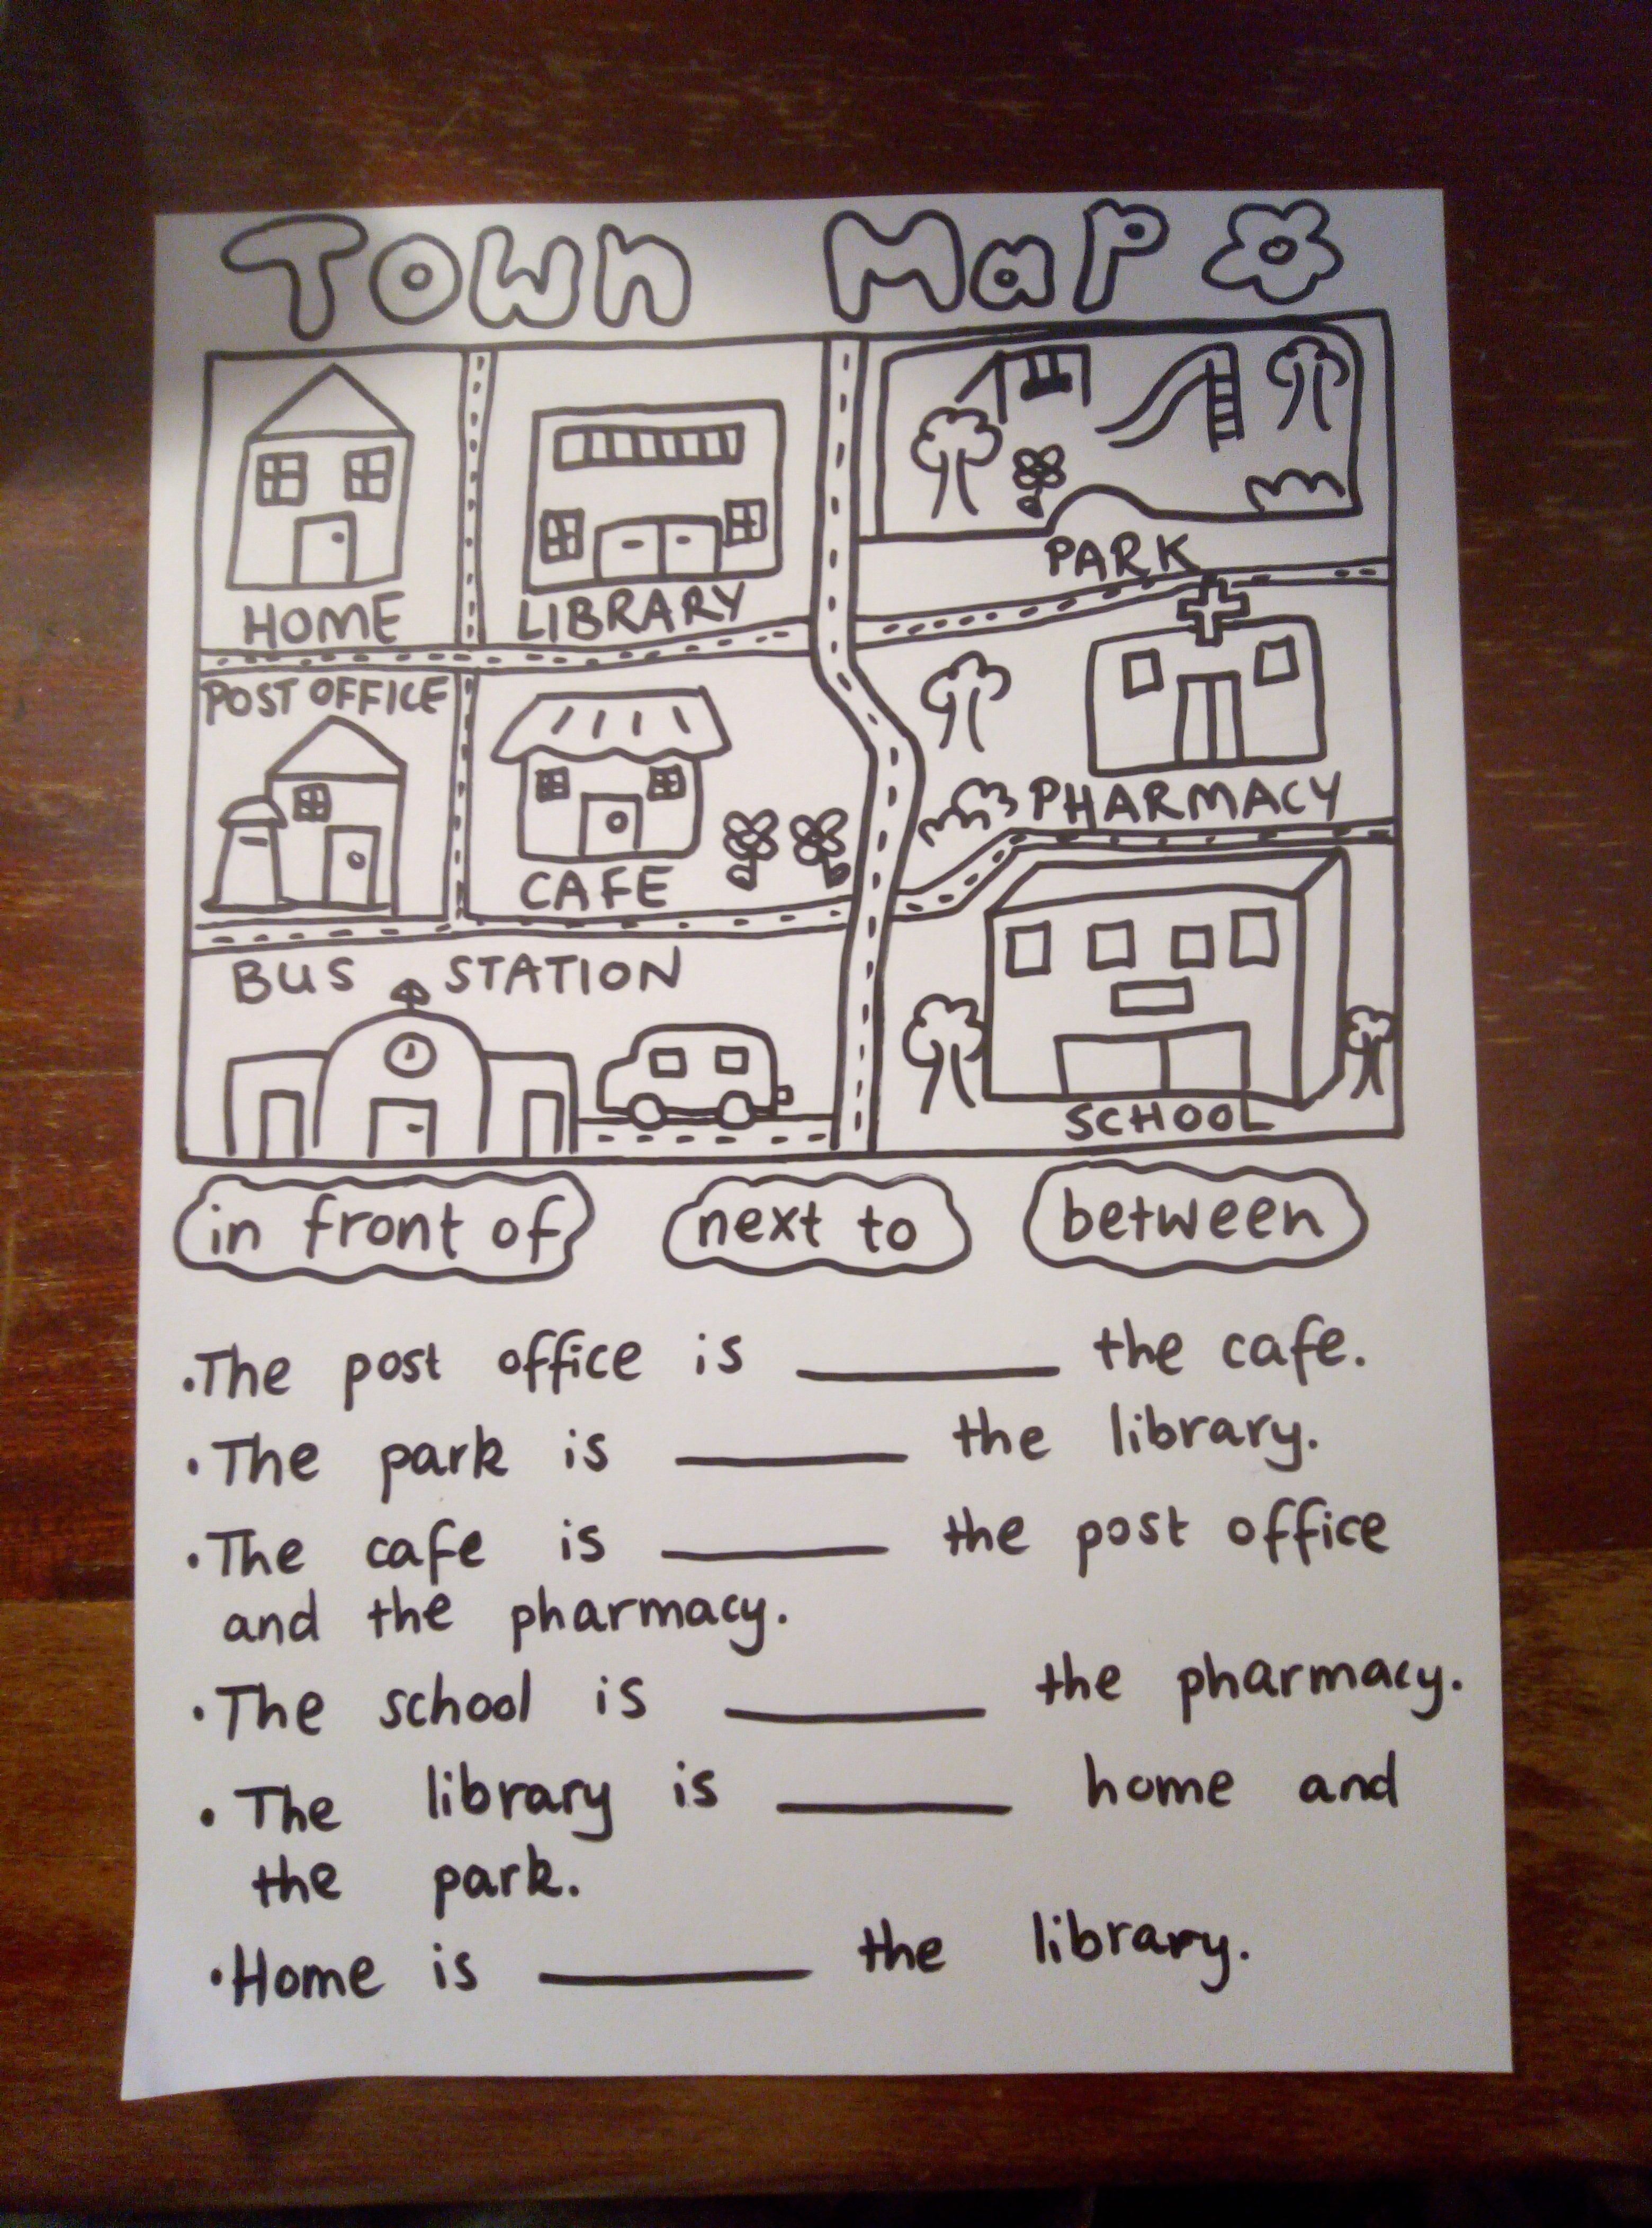 Town Map Prepositions Worksheet For Esl Students